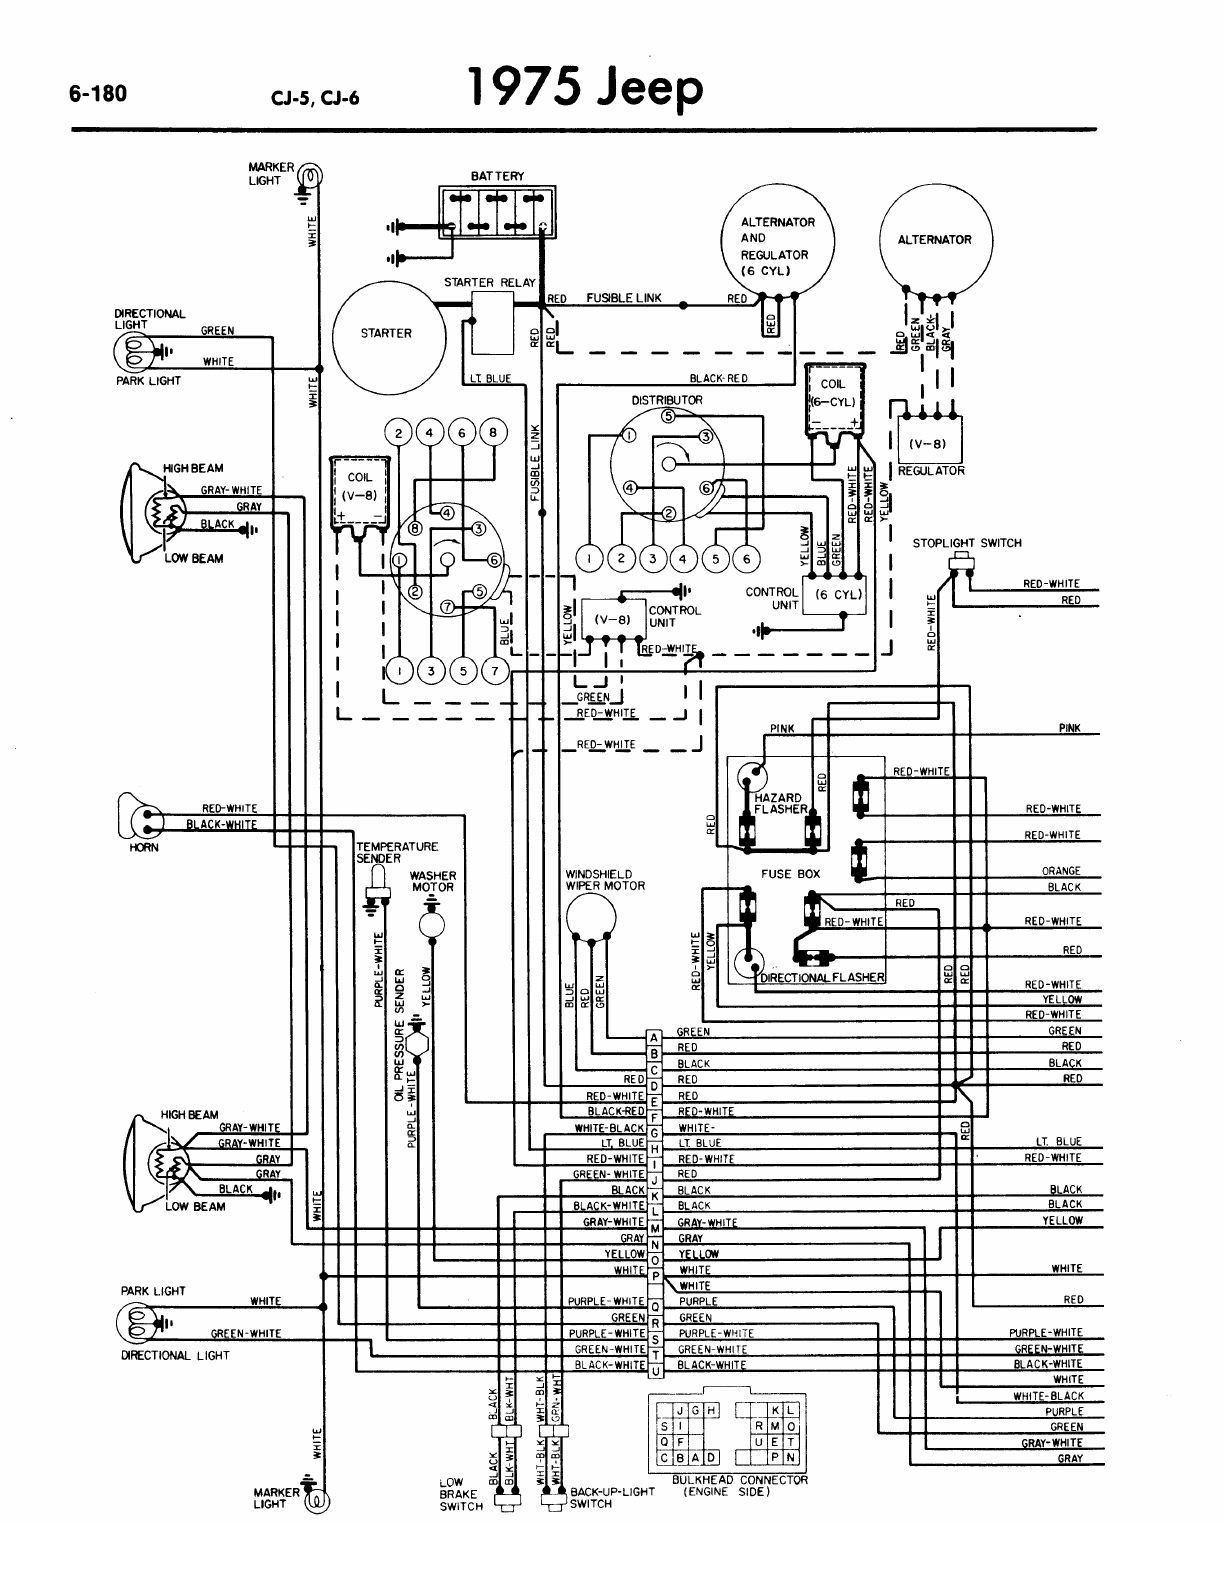 Trane Wiring Diagrams 2307 5588 - 97 Lexus Sc400 Ecu Wiring Diagram for  Wiring Diagram SchematicsWiring Diagram Schematics